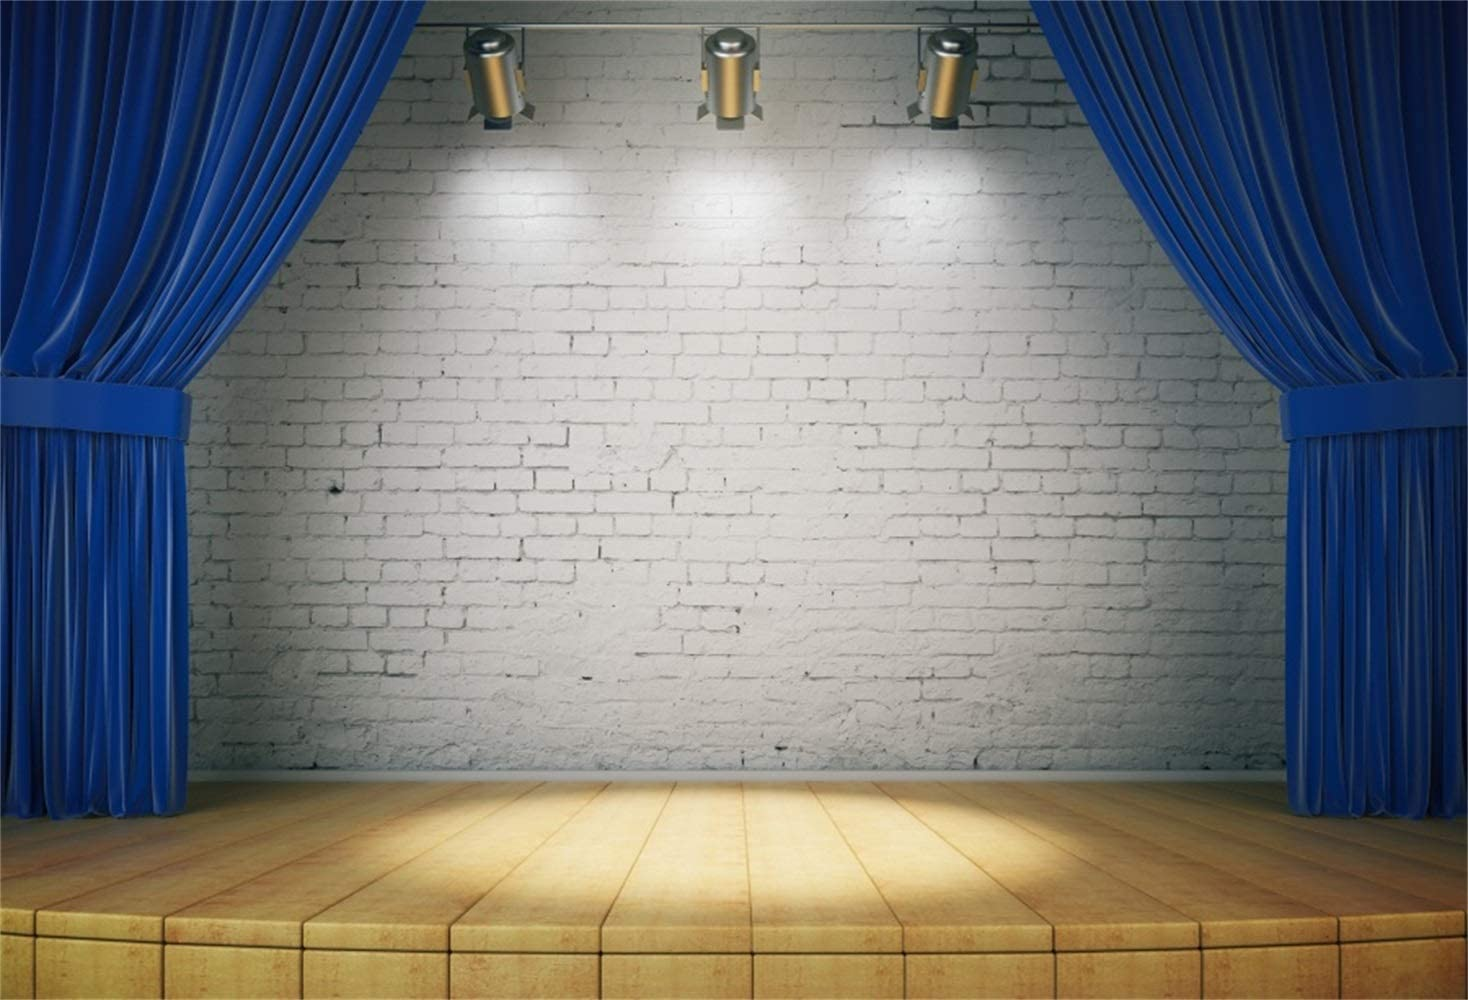 12x10ft Vinyl Polyster Backdrop The Blue Stage Curtain Wood Floor Photography Background Photo Studio Props Wall LY073 for Party Decoration Birthday YouTube Videos School Photoshoot Photo Background P